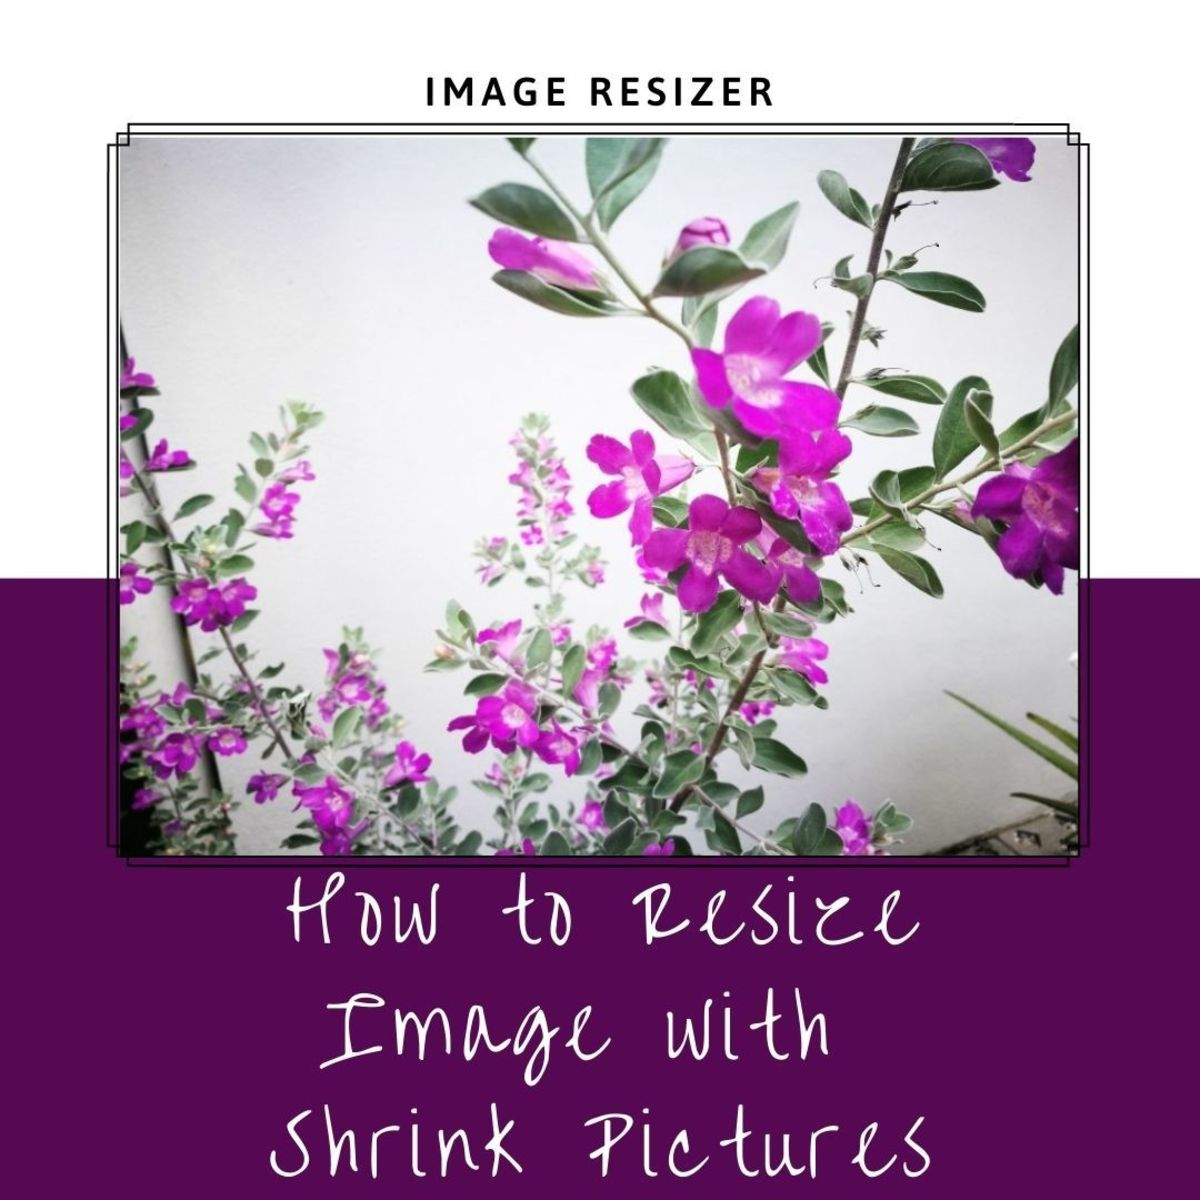 Resize Image with Shrink Pictures, a Free Online Photo Resizer